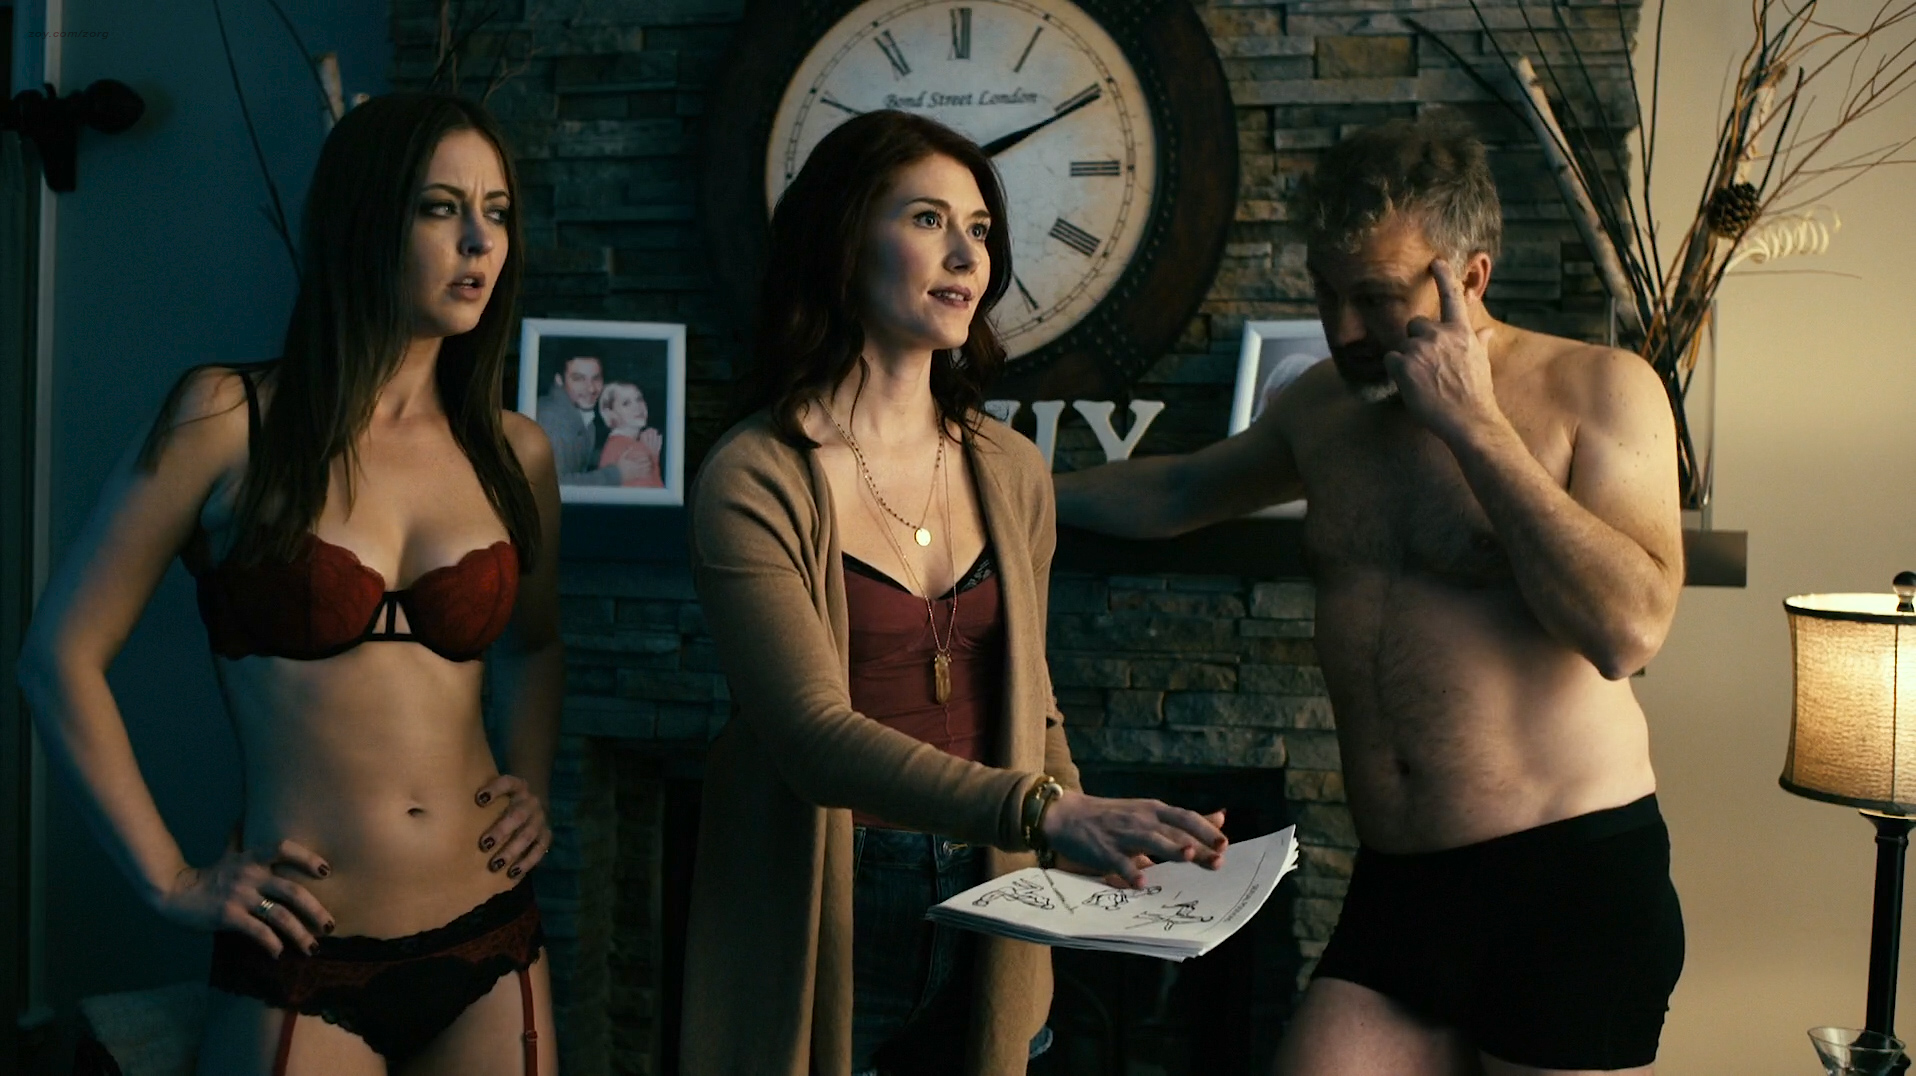 Lauren Lee Smith hot sex Jewel Staite hot Zoe Cleland nude and Katharine Isabelle - How To Plan An Orgy In A Small Town (CA-2015) HD 1080p WEB-DL (1)